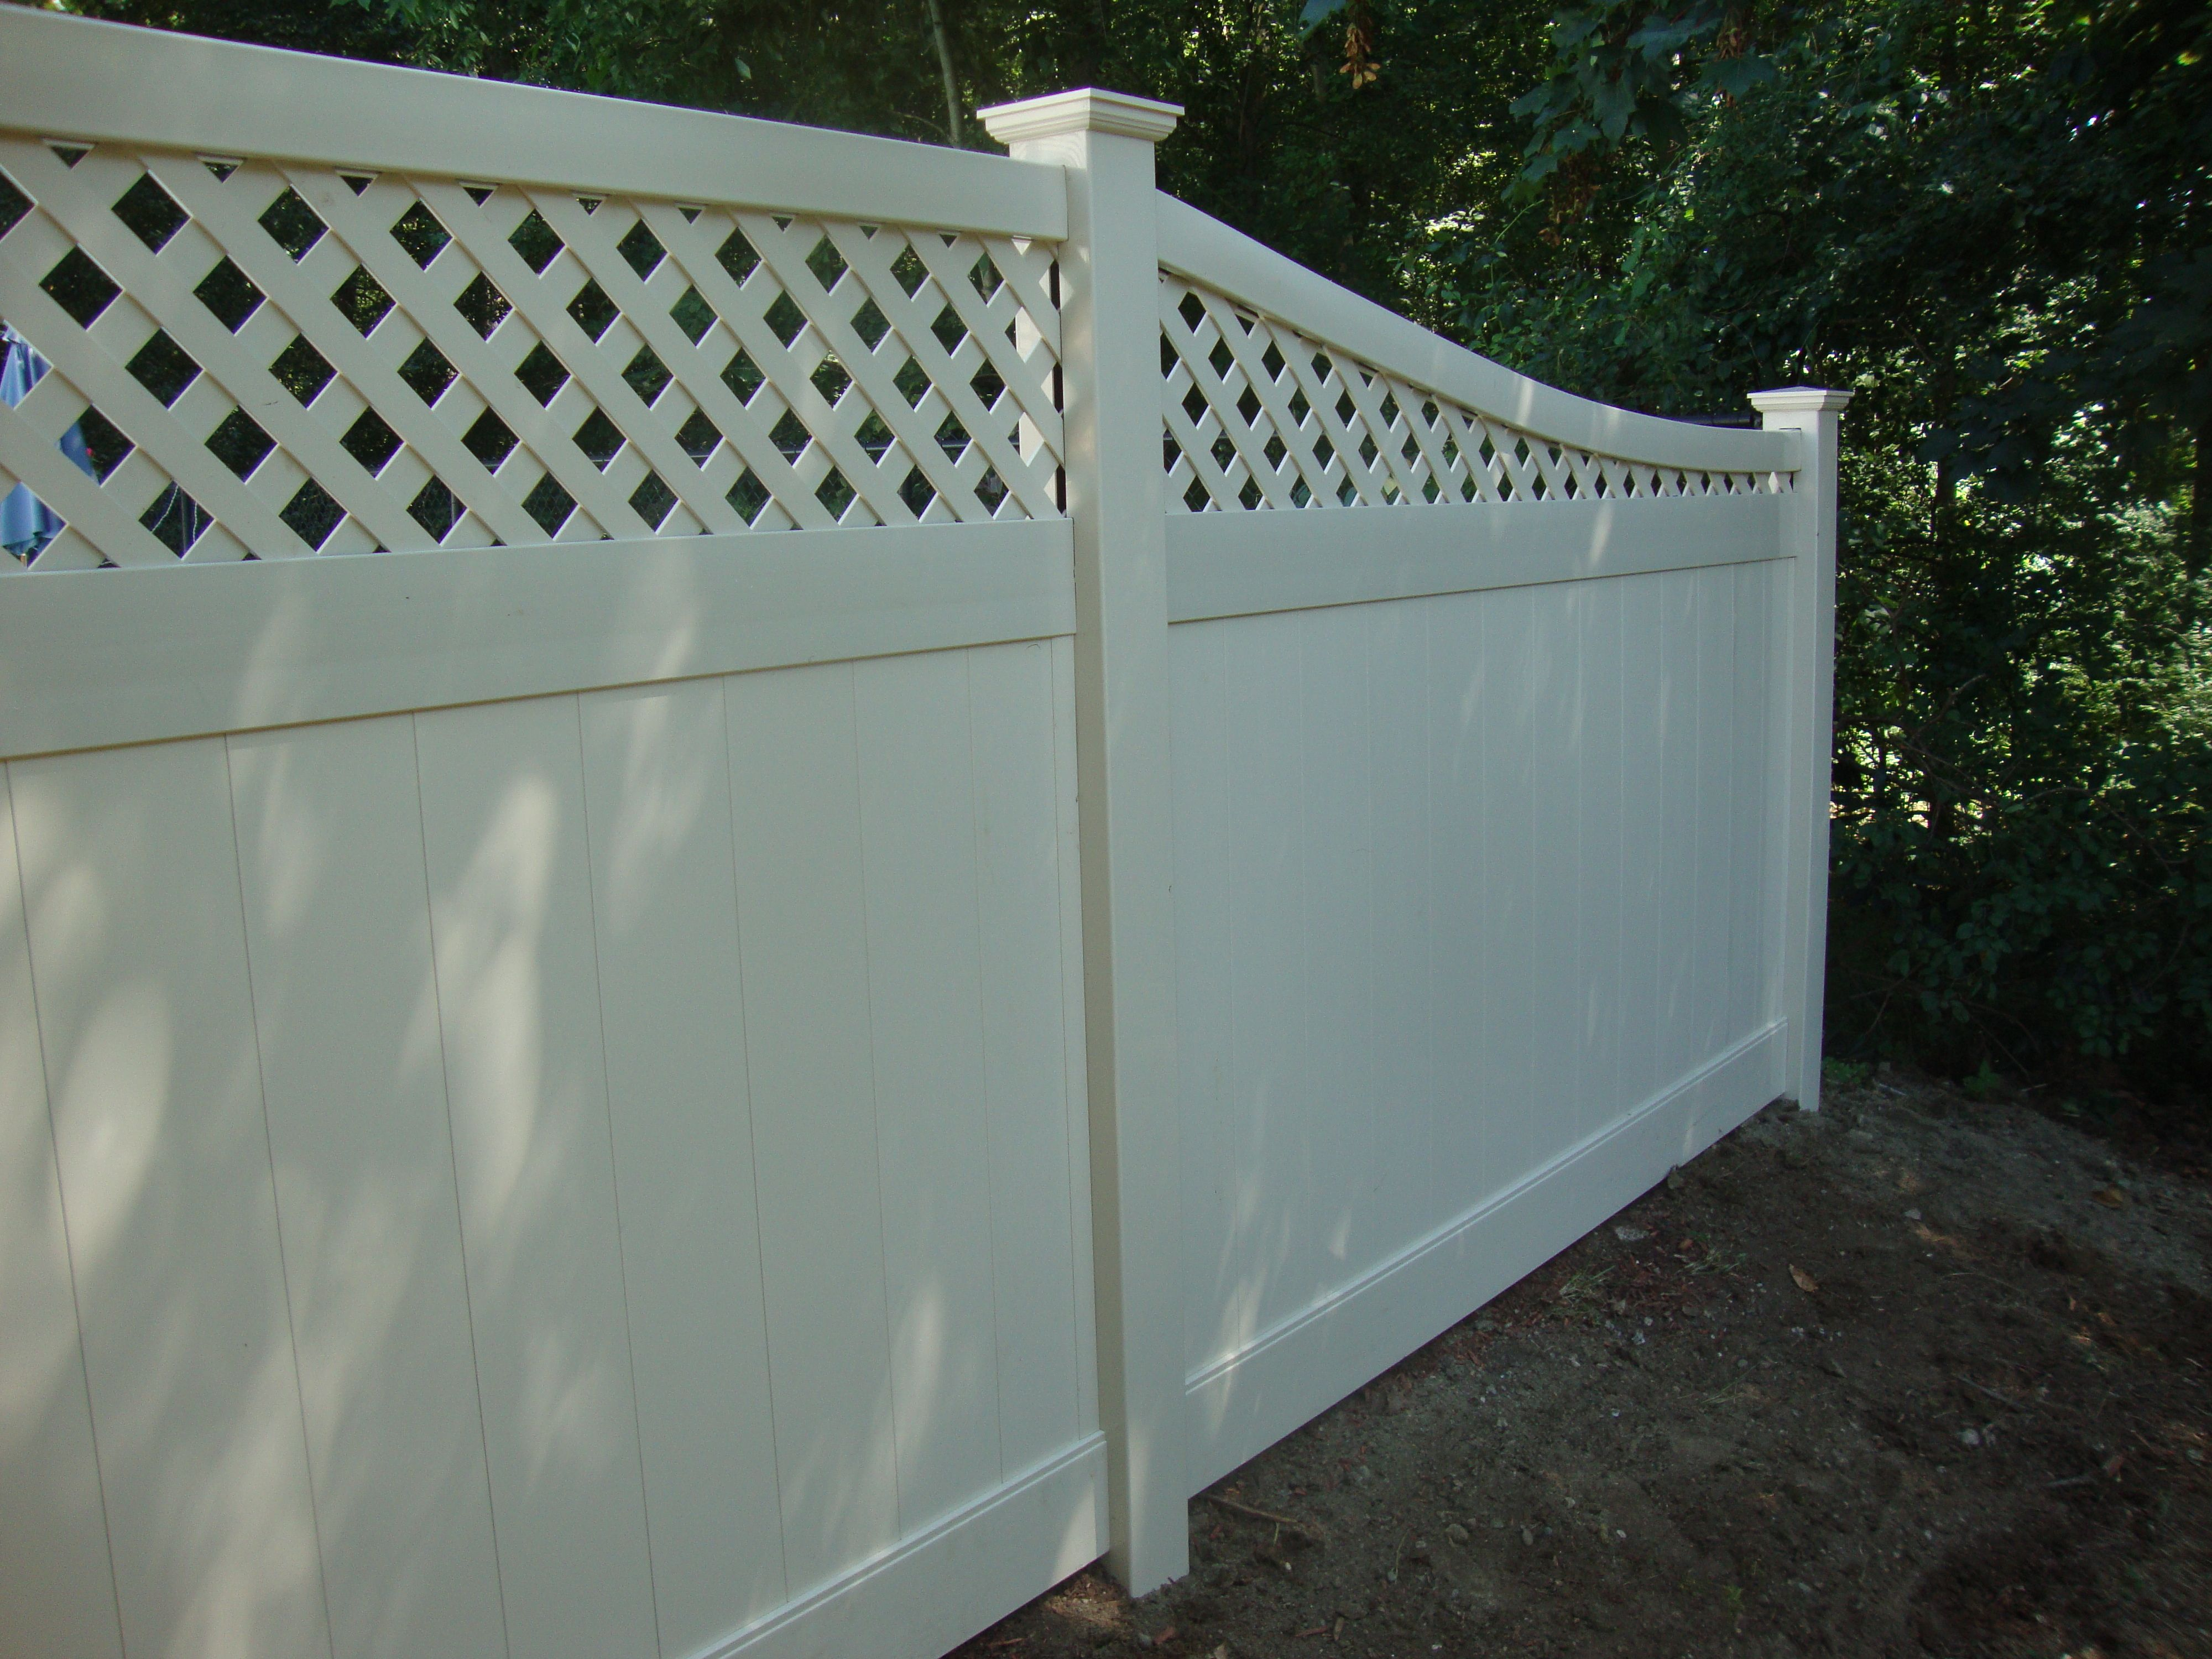 Almond Colored Vinyl Diamond Lattice Top Fence With A Curved Top Rail Sloping Section Lattice Garden Garden Fence Fence With Lattice Top